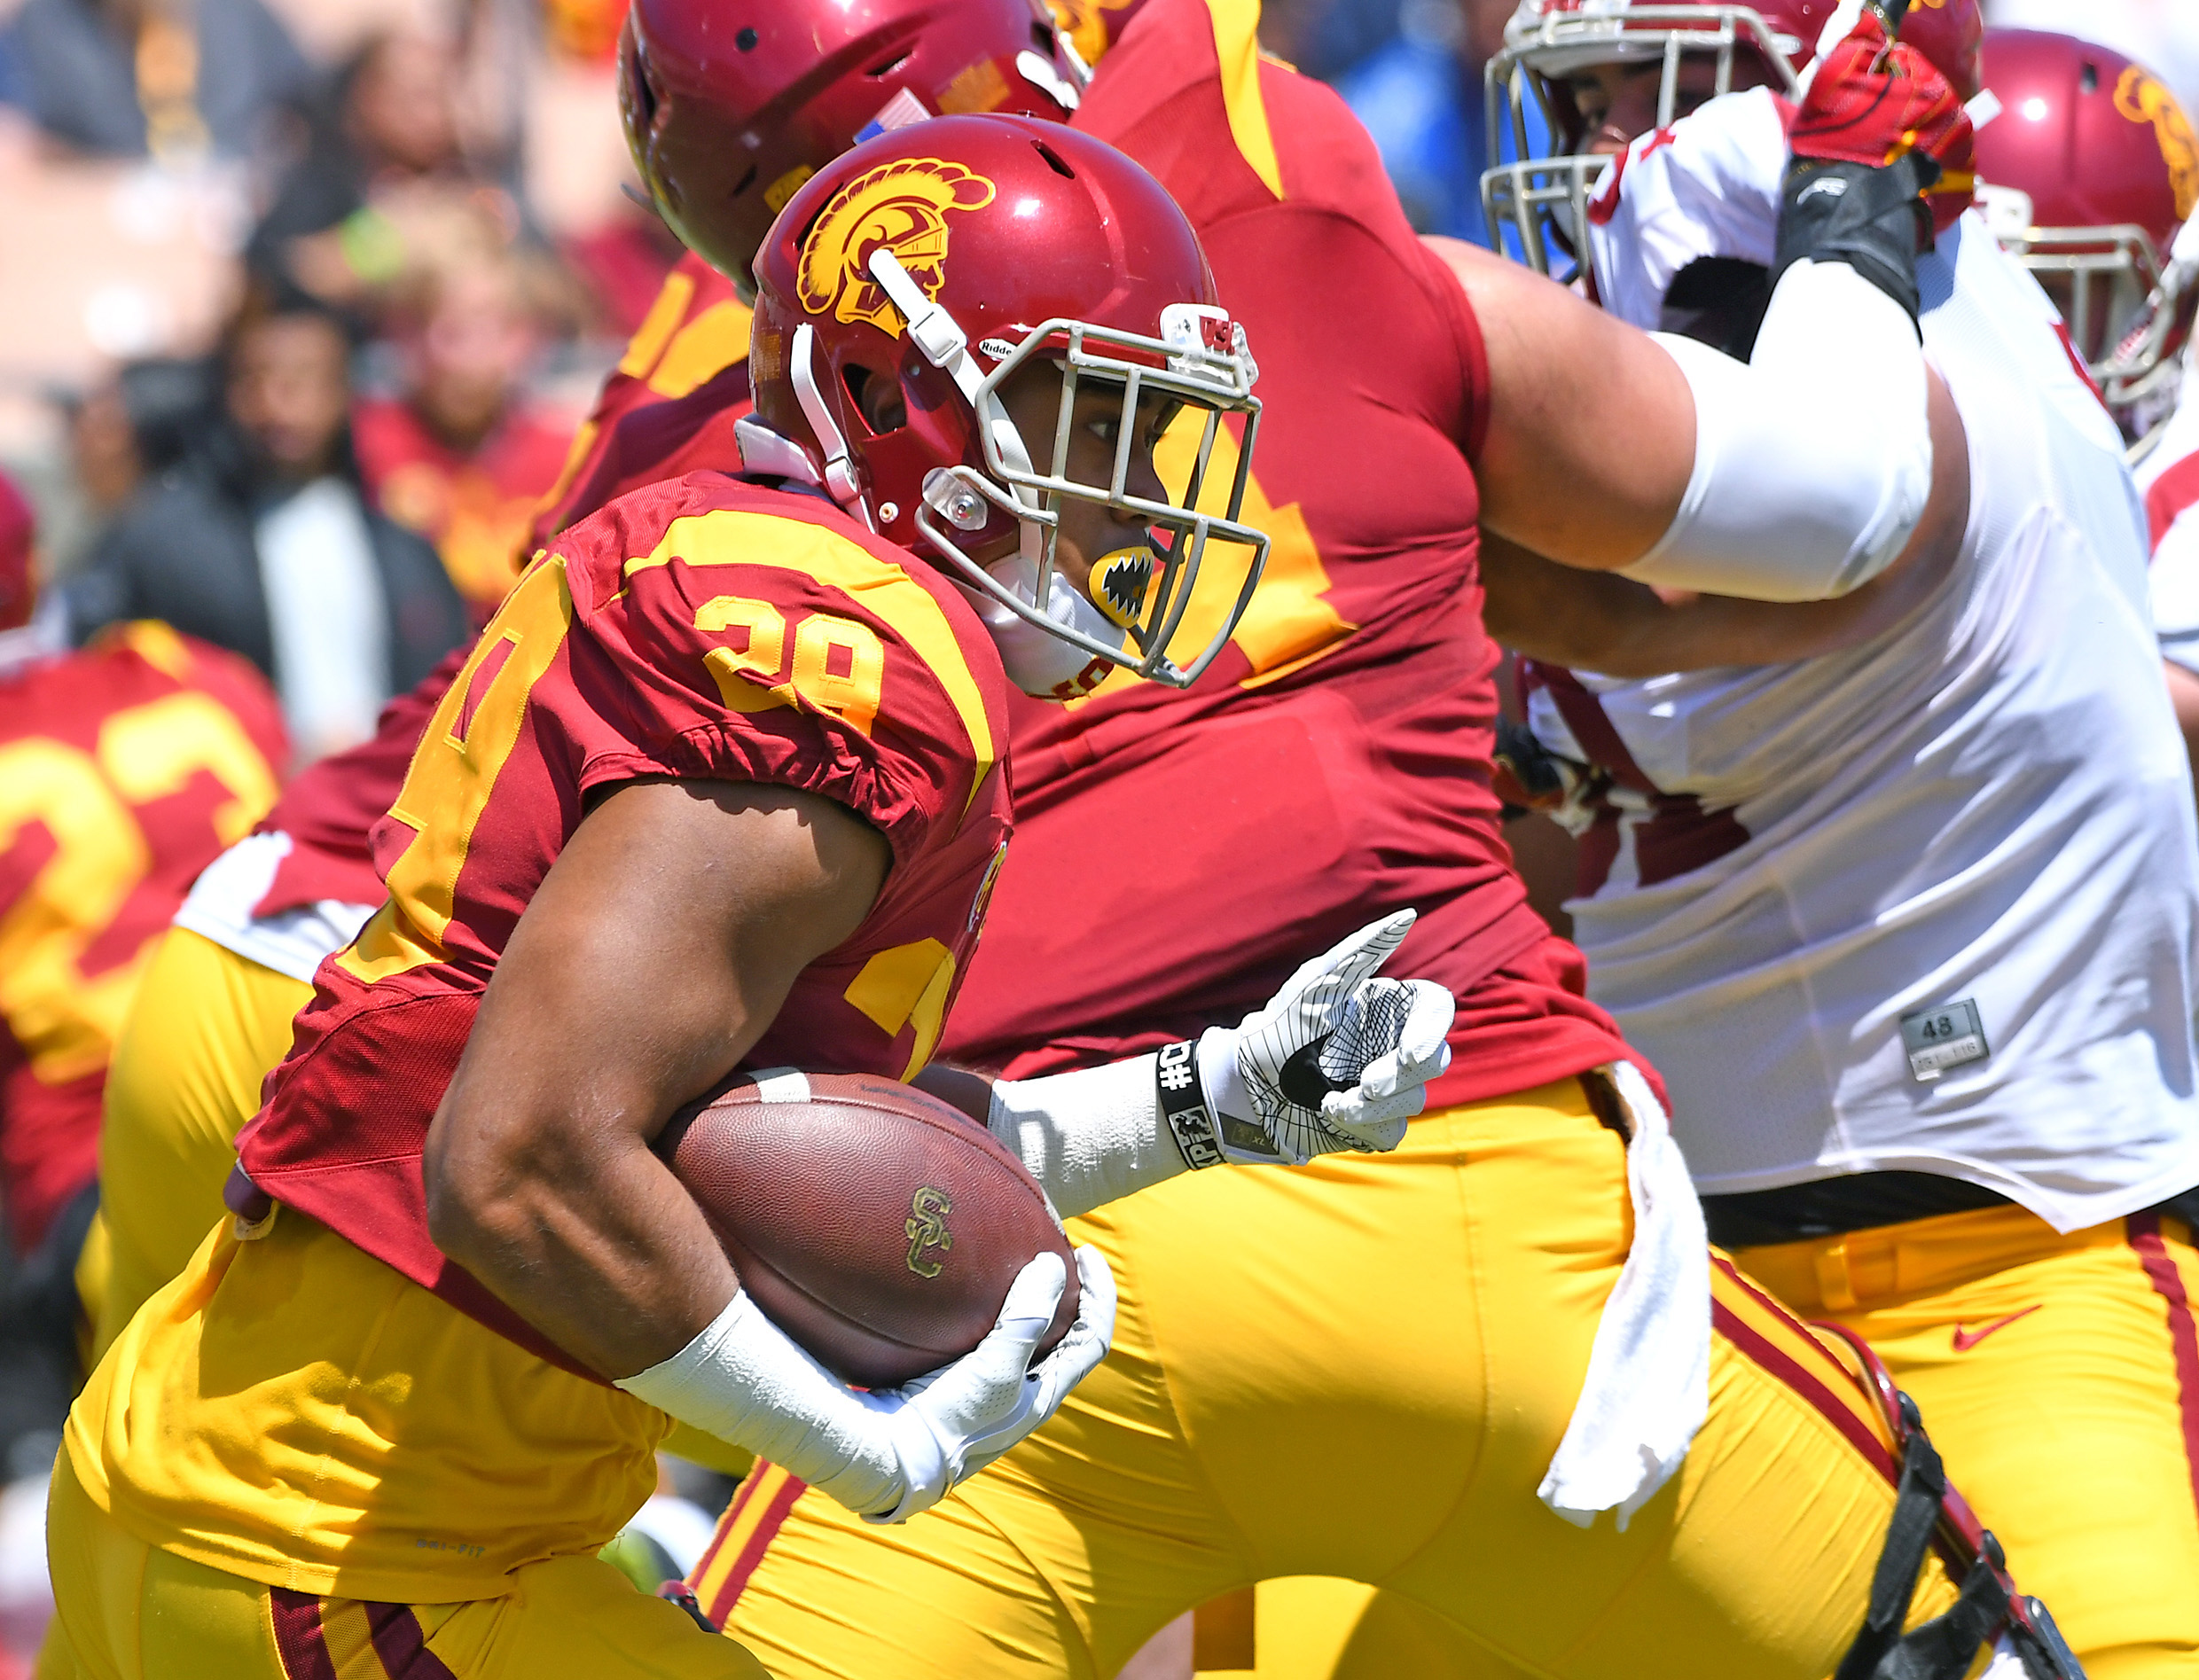 10013925-ncaa-football-southern-california-spring-game